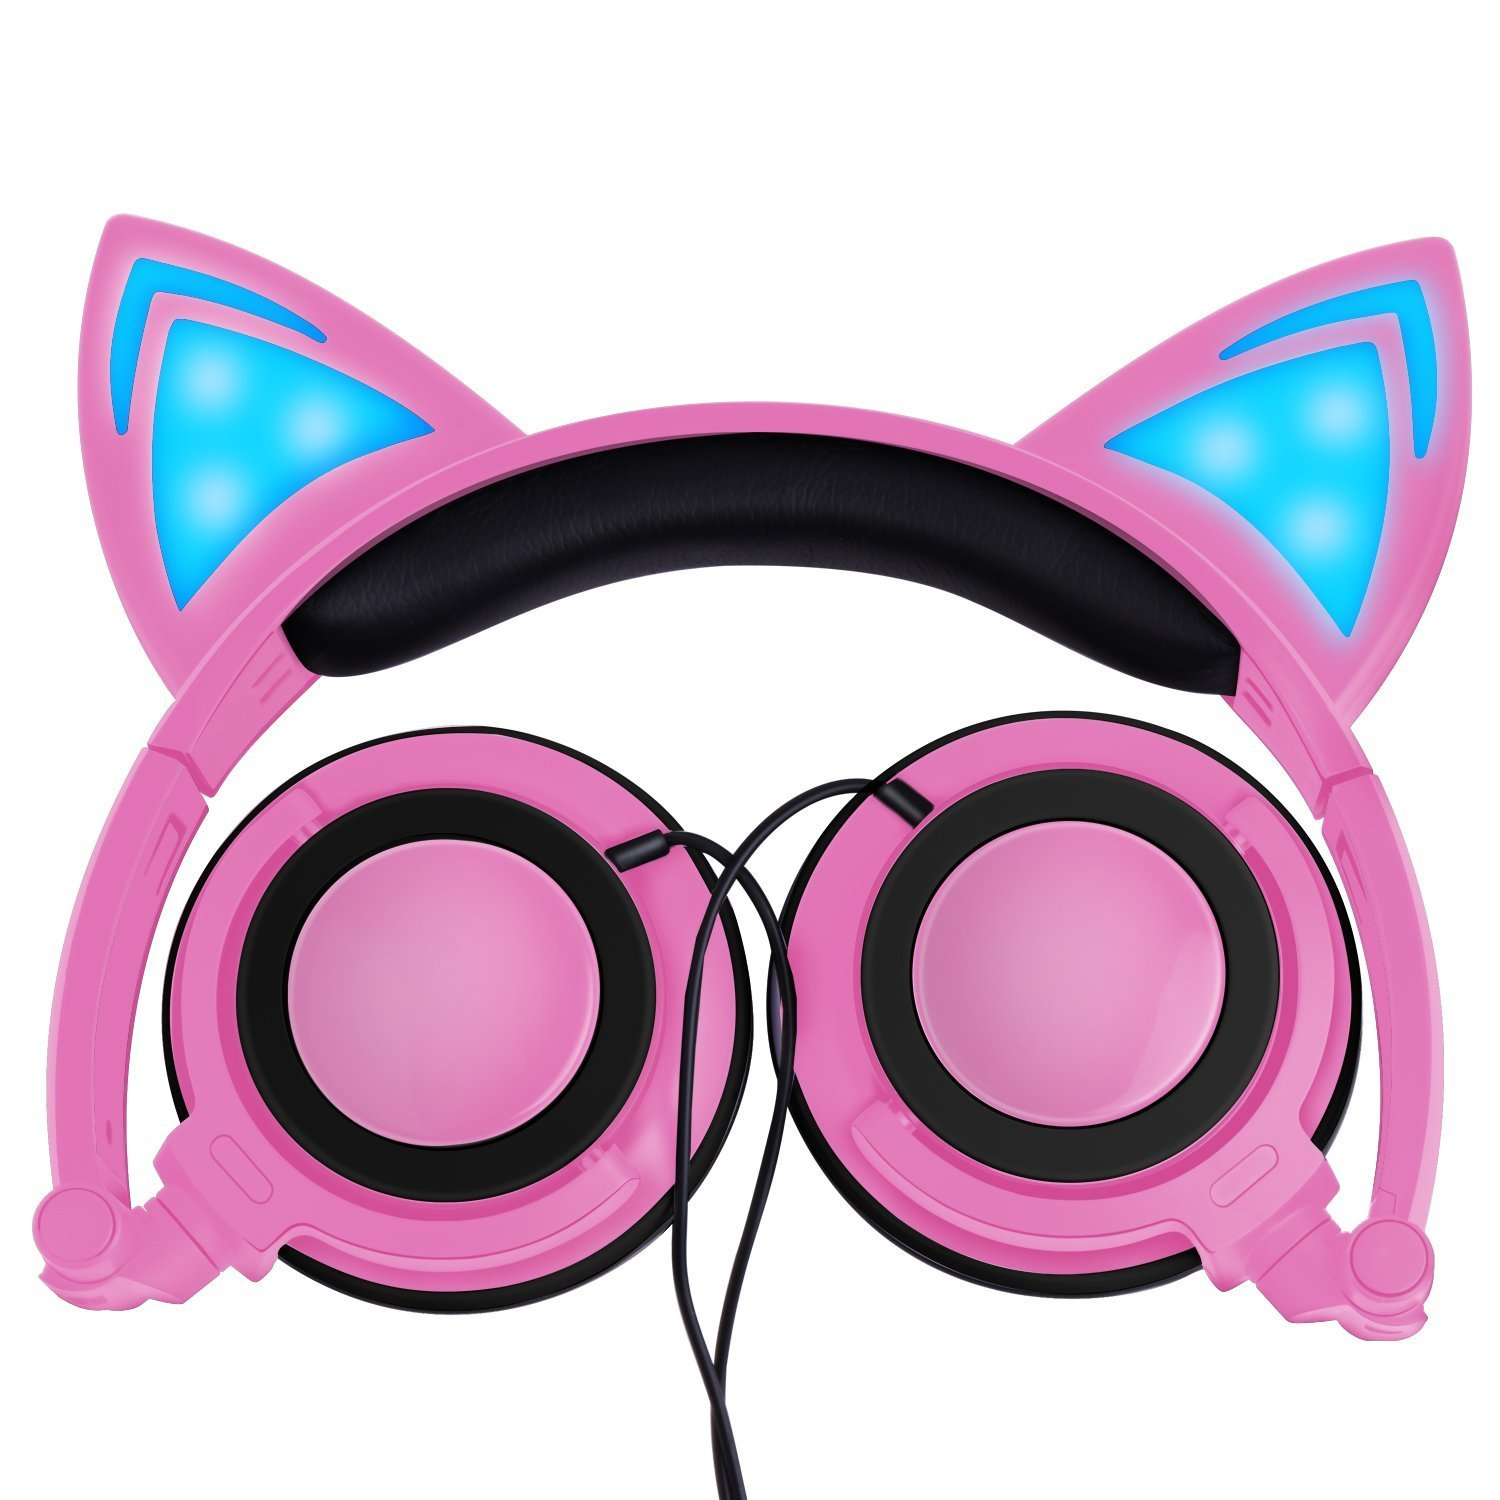 [Upgraded Version] Cat Ear Kids Headphones with LED Light Rechargable 85dB Volume Limited iGeeKid Foldable Over/On Ear Headsets for Girls Boys Phone Tablet School Travel Outdoor